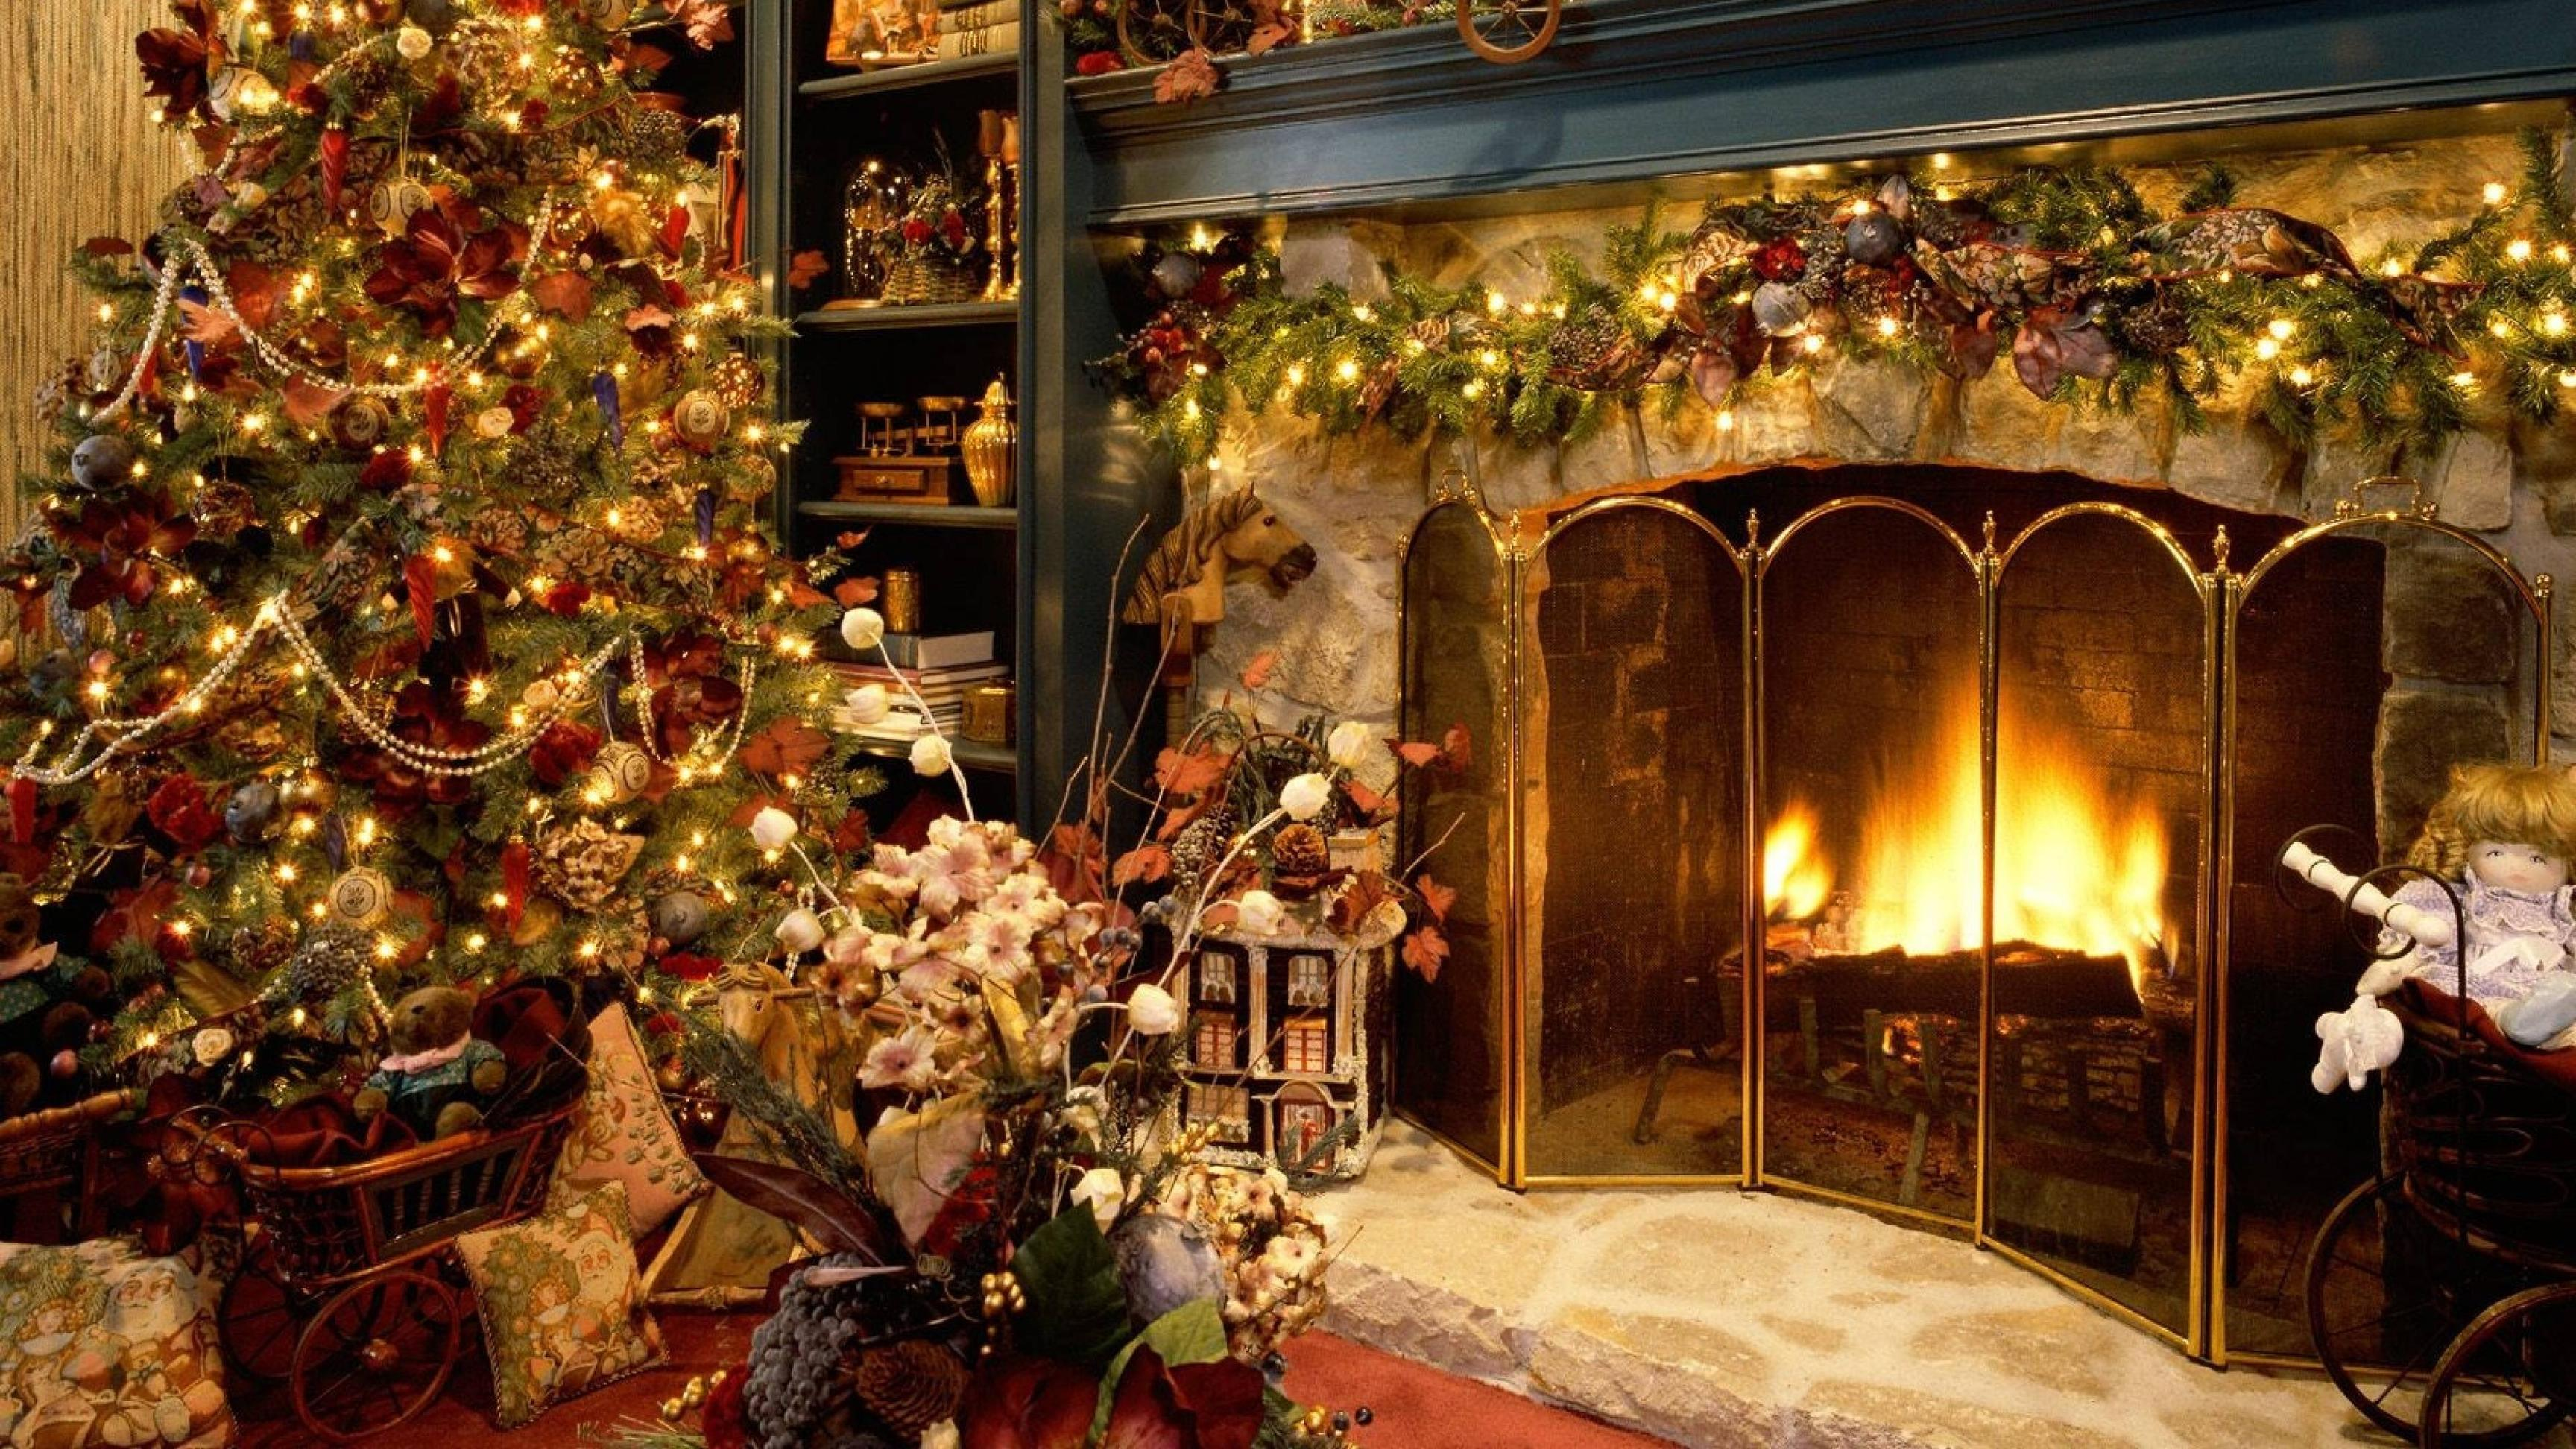 Download Wallpapers 3840x2160 new year, christmas, fireplace, fur